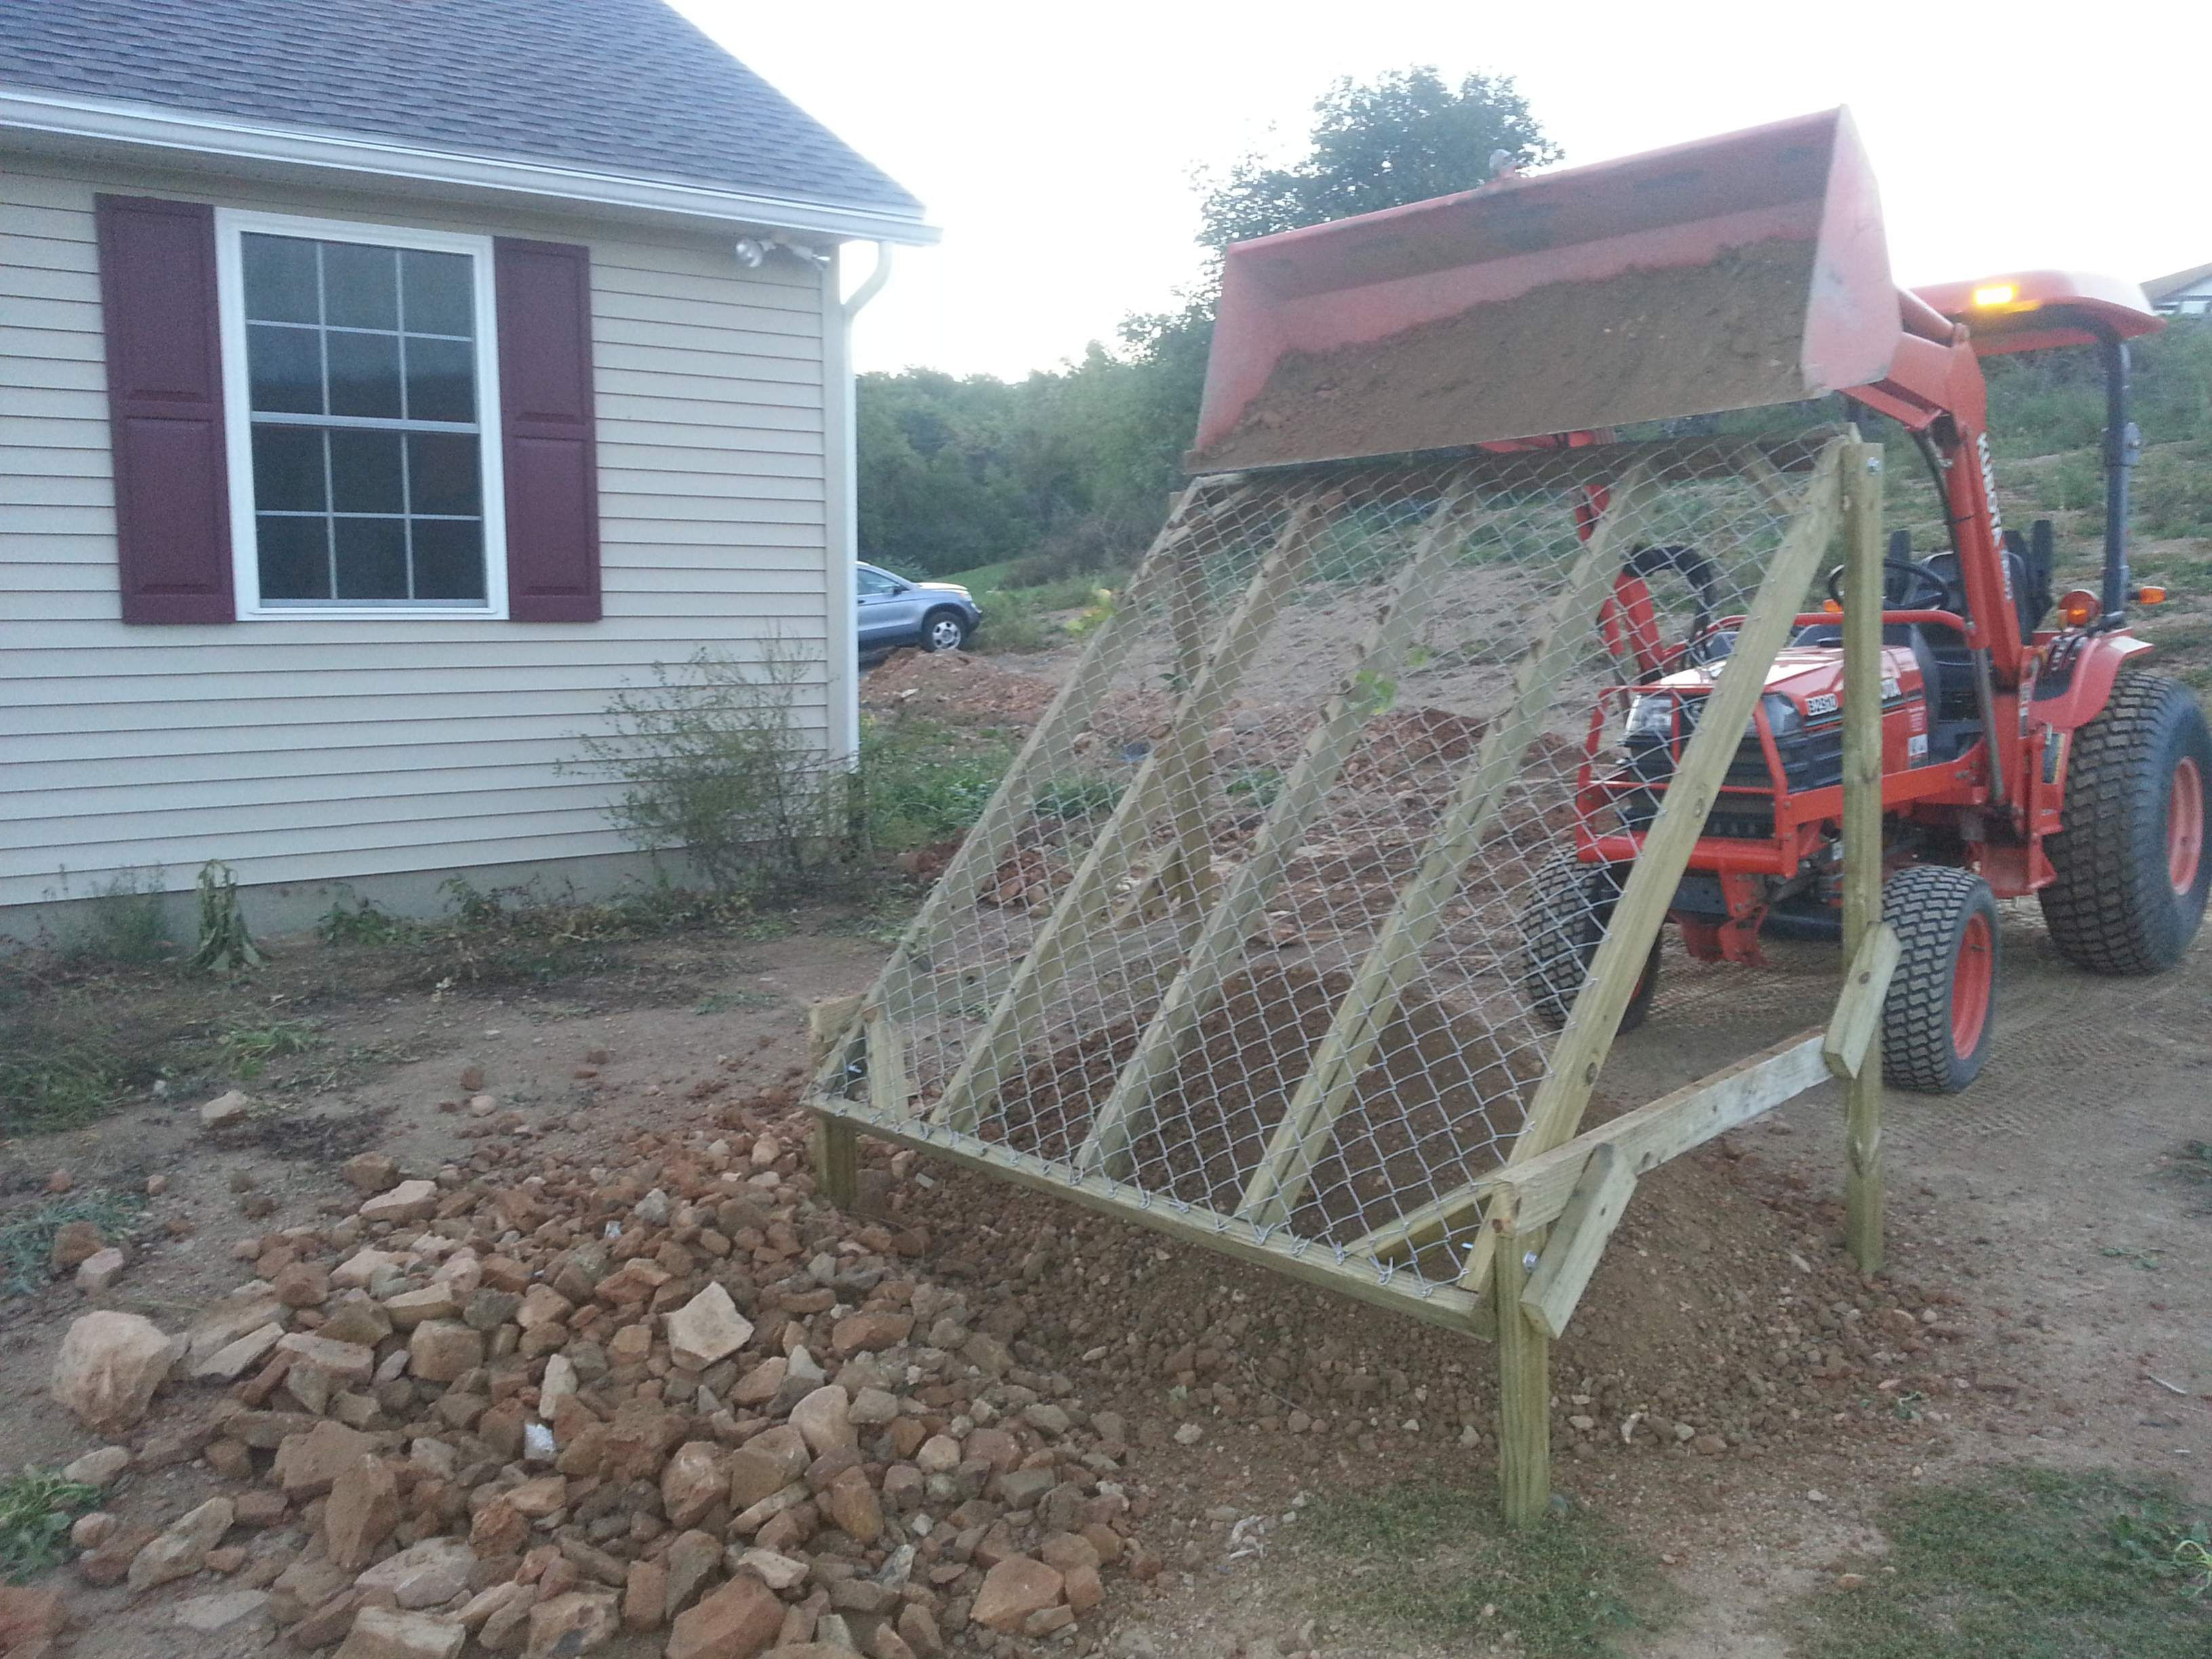 Pin By Cheryl Obrien On Rock Sifter In 2019 Tractor